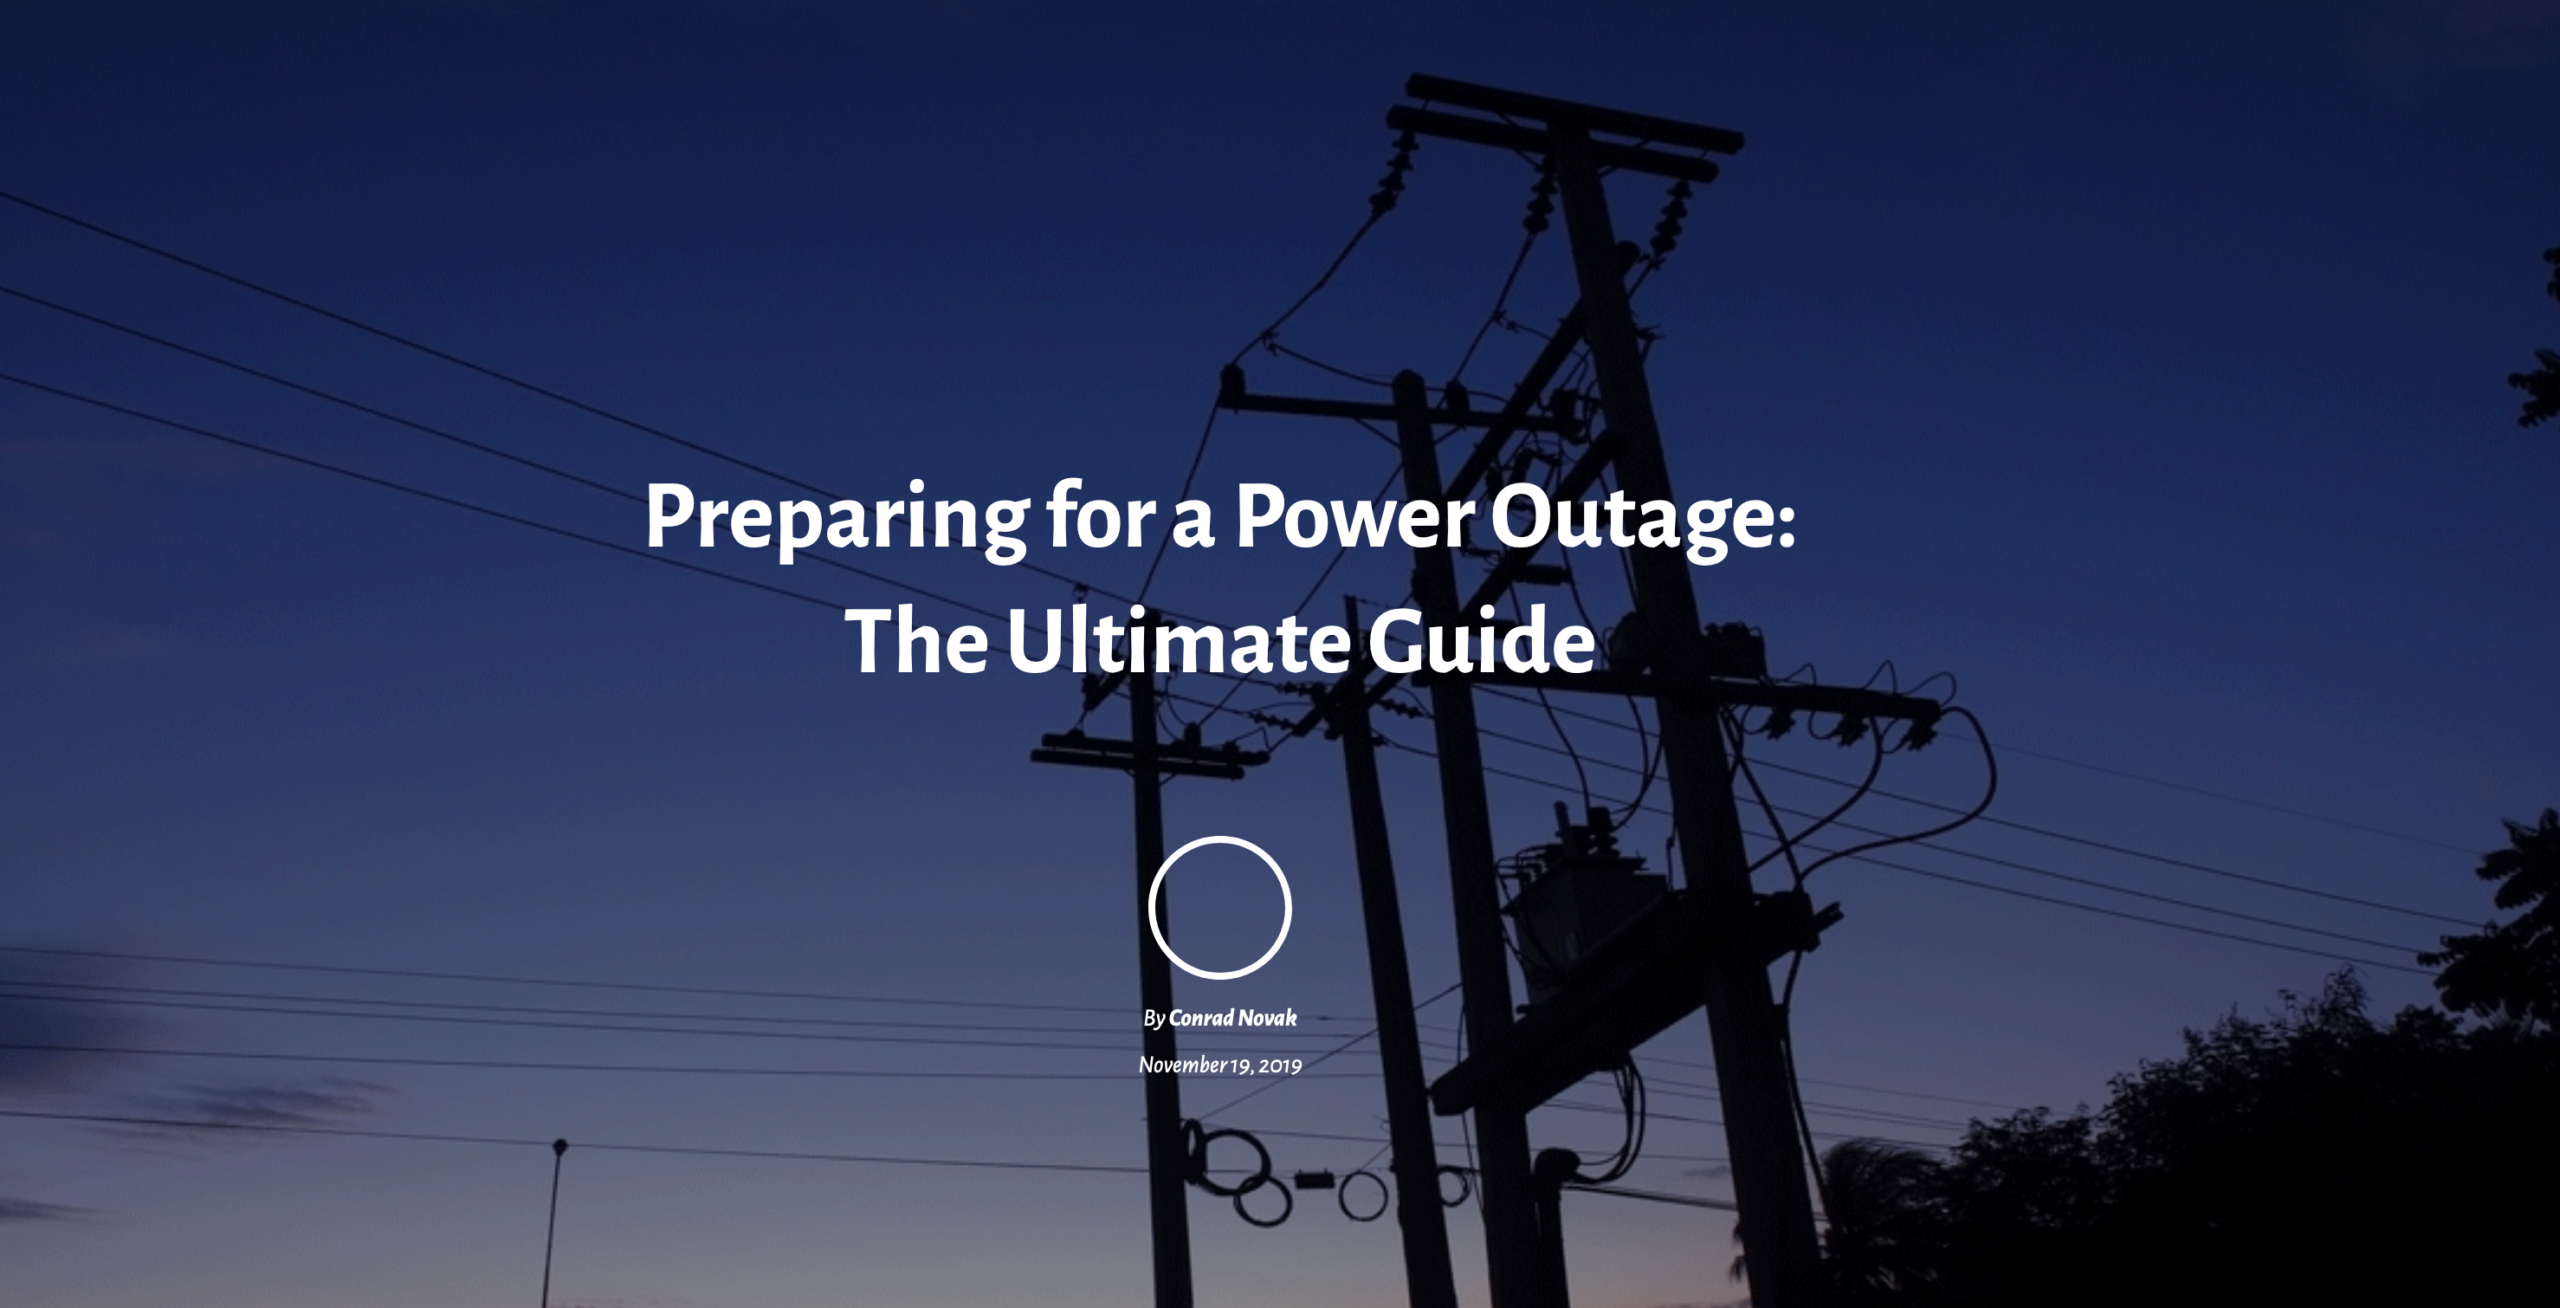 Preparing for a Power Outage: The Ultimate Guide